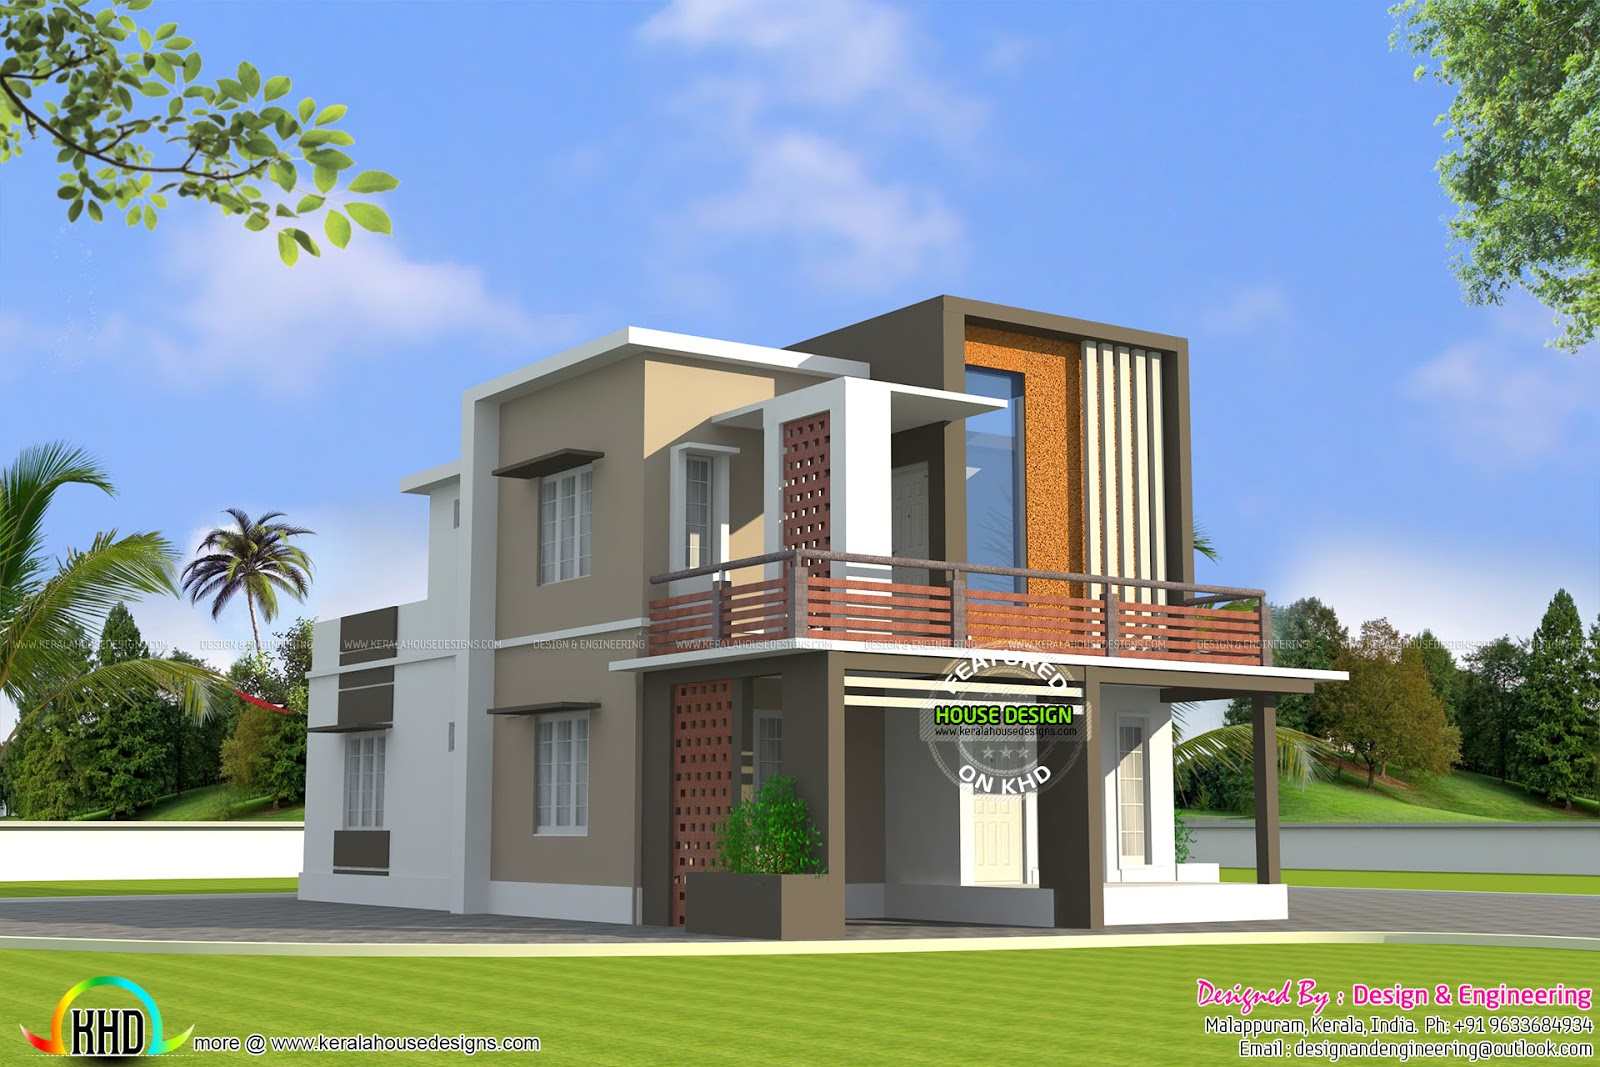 Low cost double floor home plan kerala home design and for Kerala home designs photos in double floor